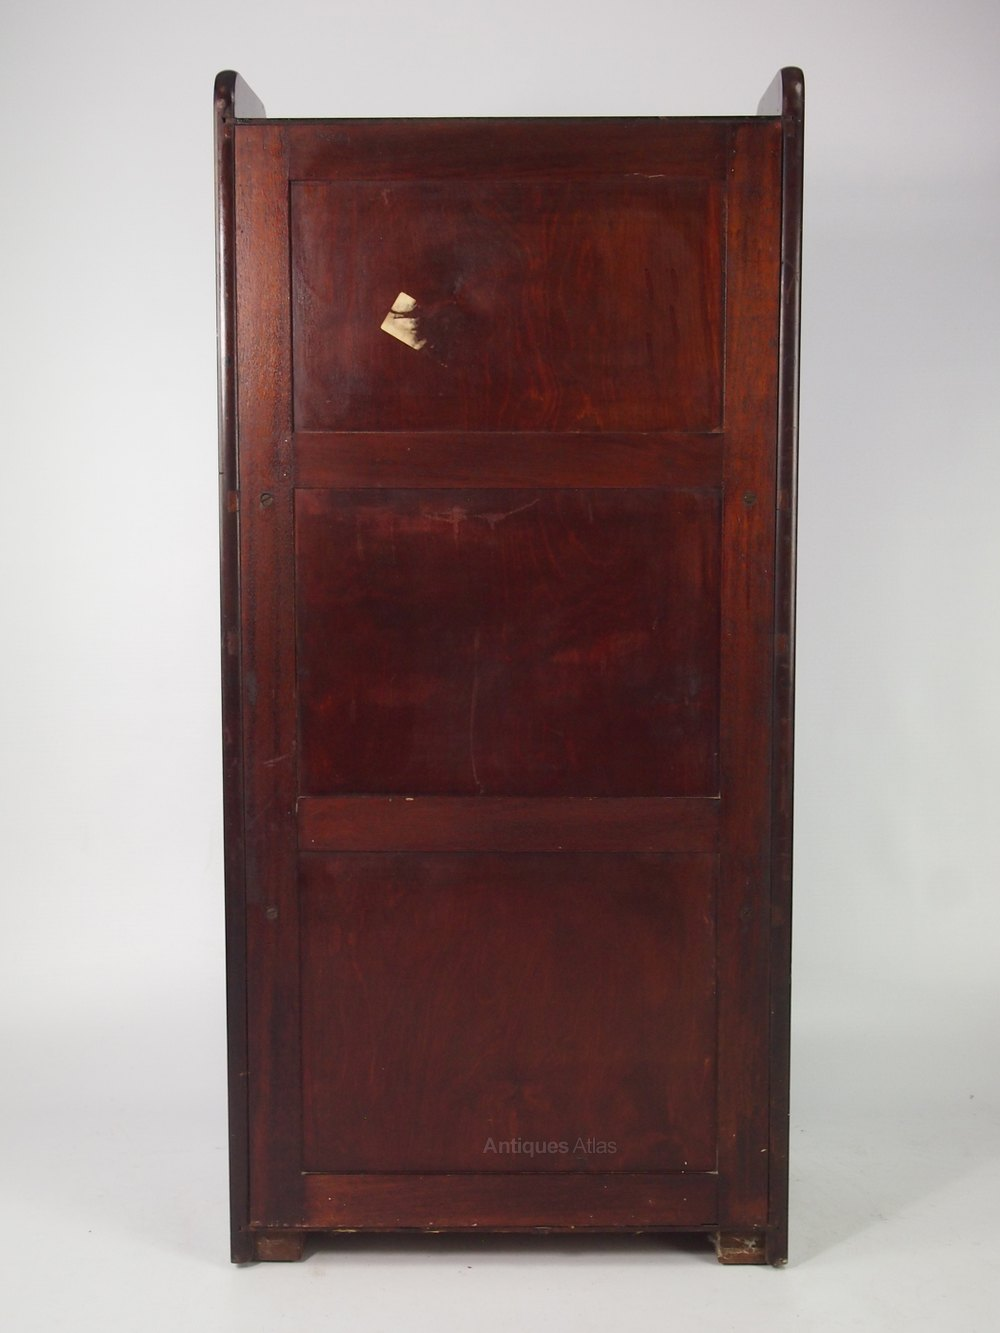 https://images.antiquesatlas.com/dealer-stock-images/antiquefurndirect/Slim_Art_Deco_Mahogany_Bureau_as526a1168z-3.jpg